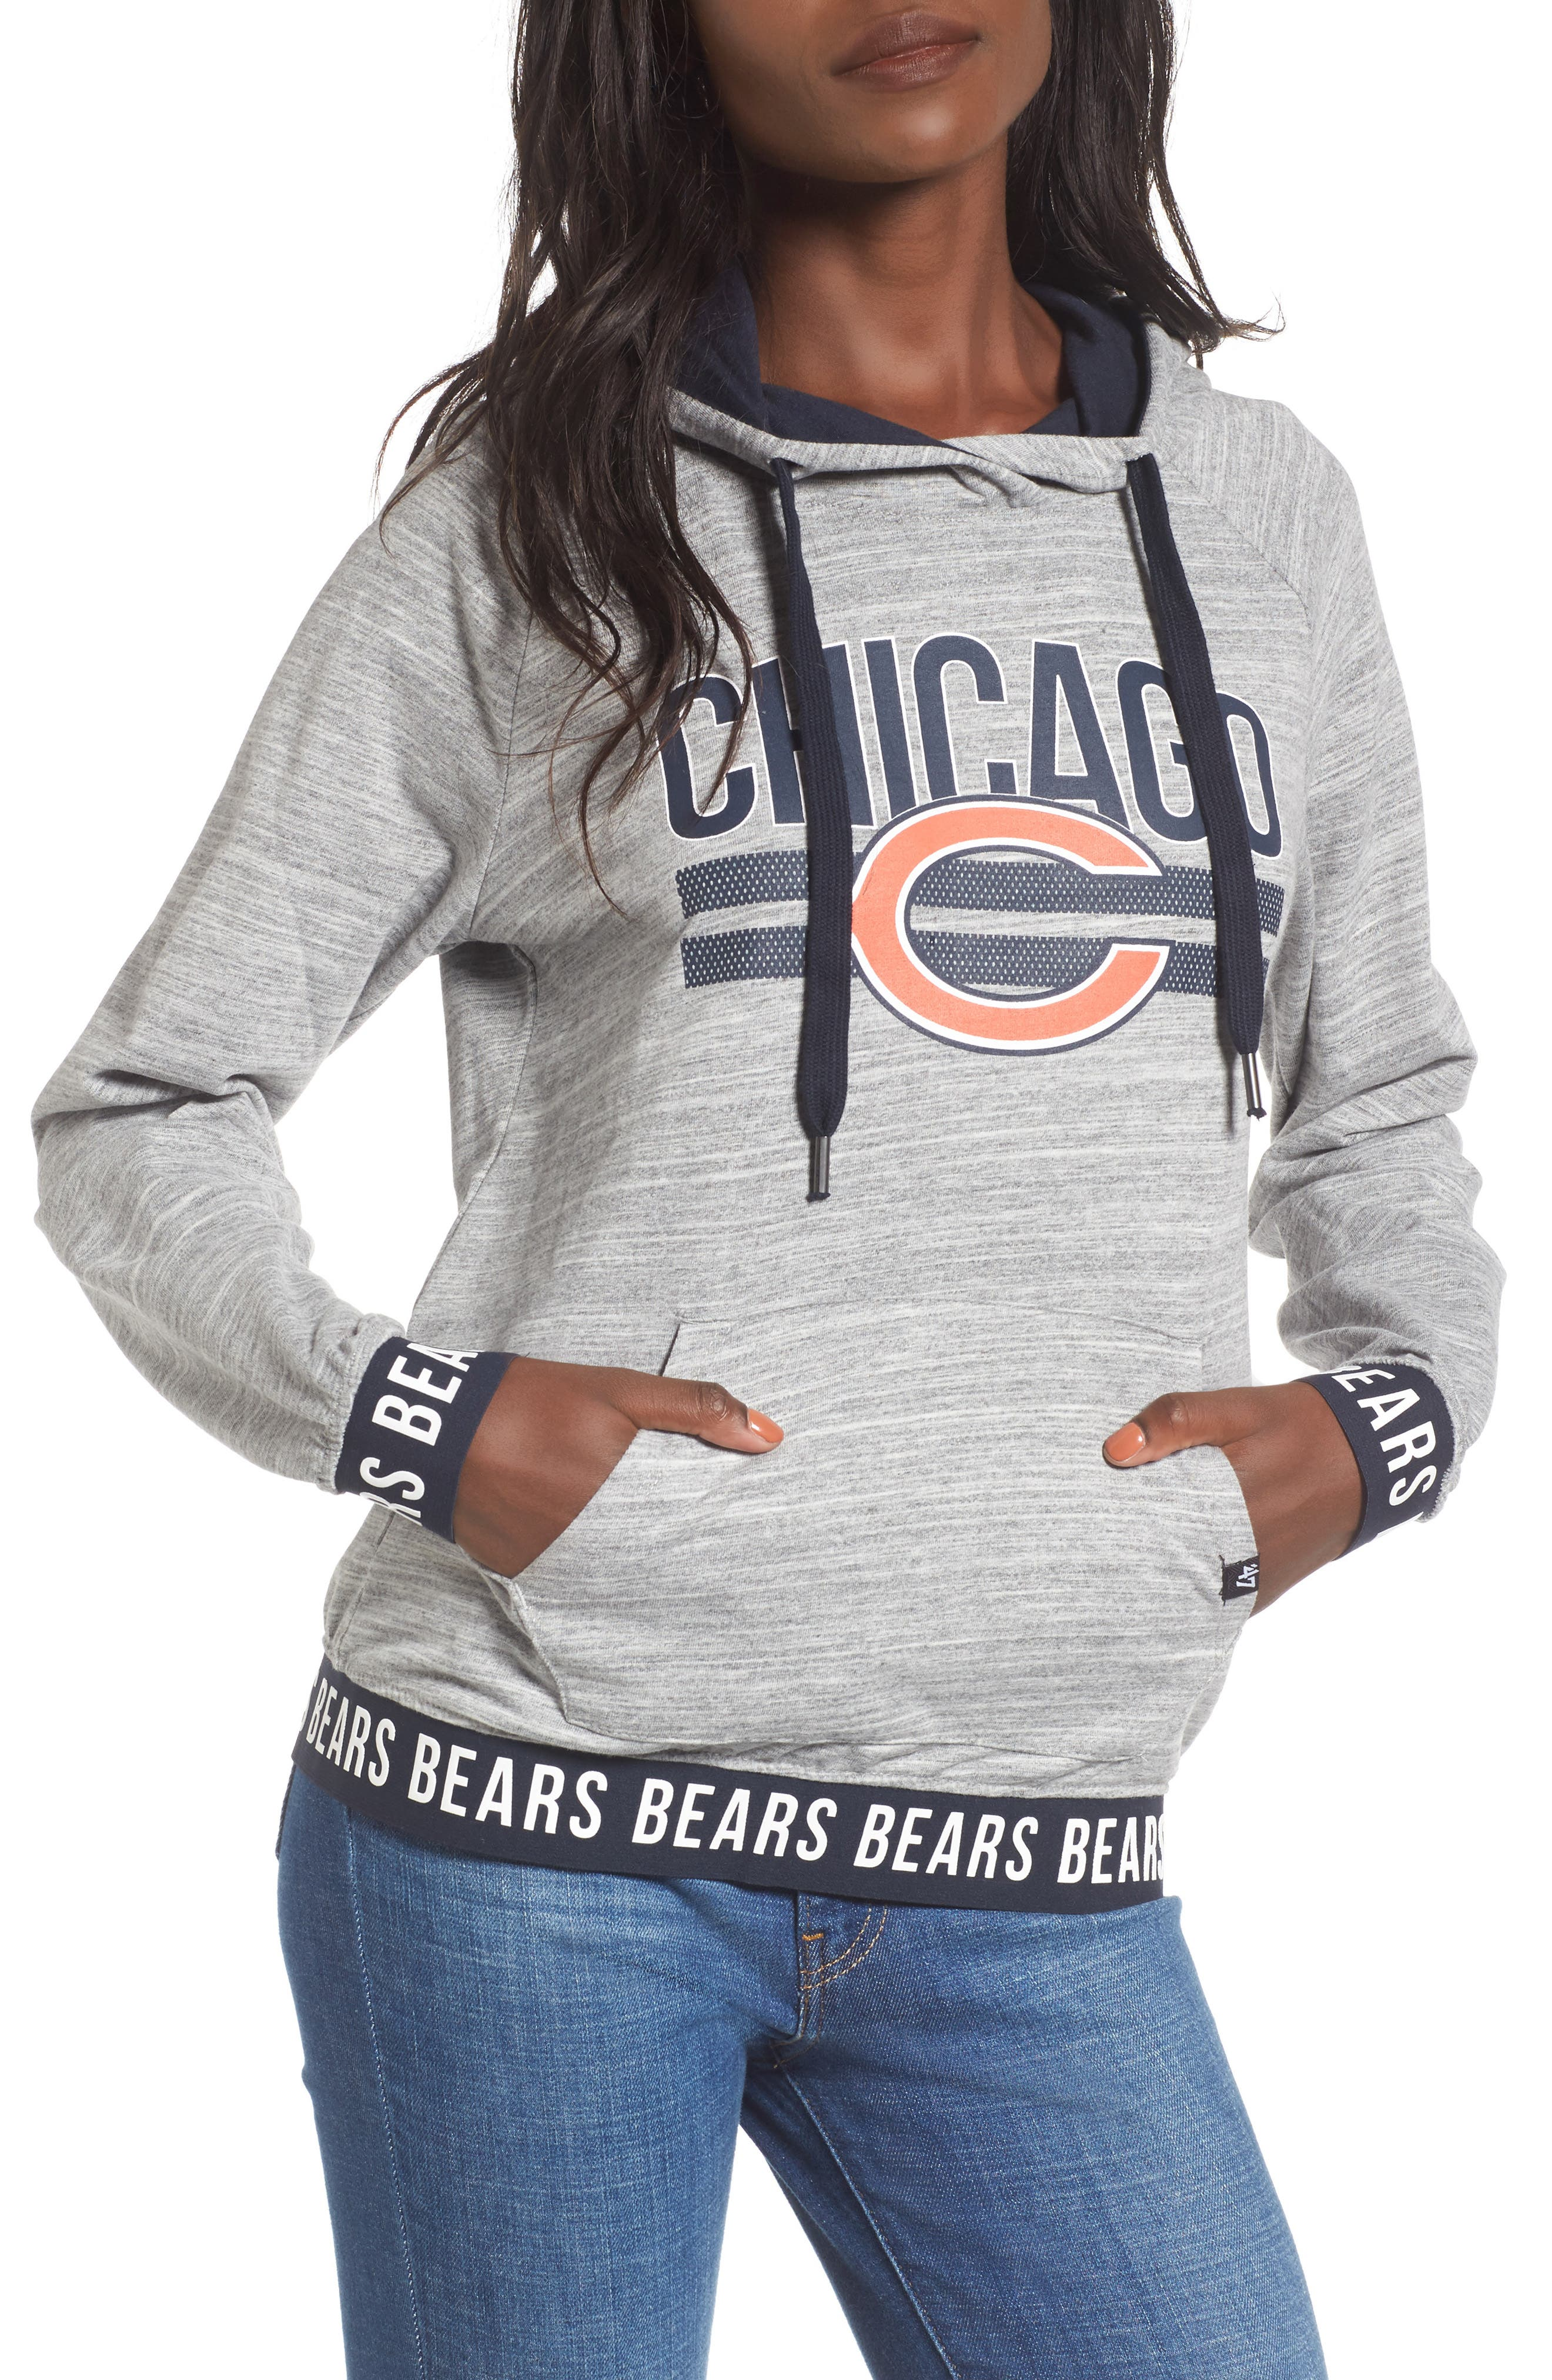 Revolve - Chicago Bears Hoodie,                         Main,                         color, 020